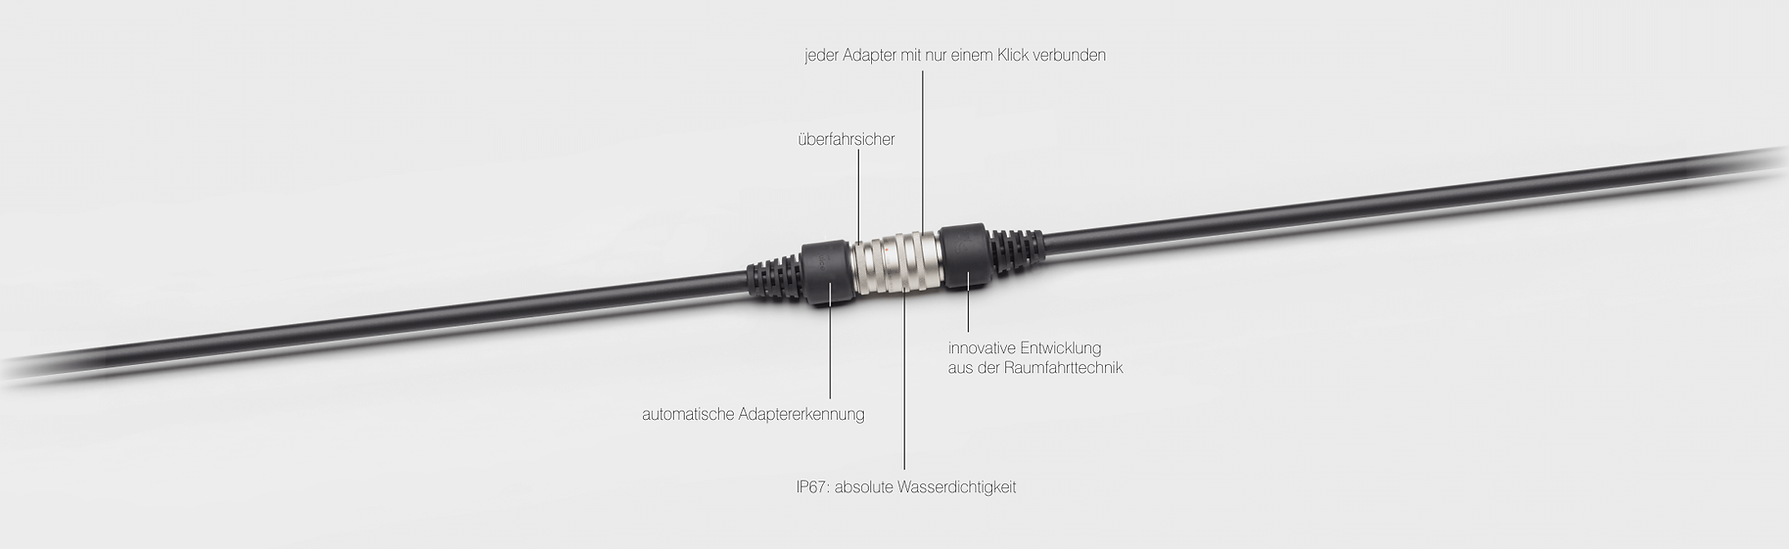 Juice Connector Ladekabel für Elektroautos